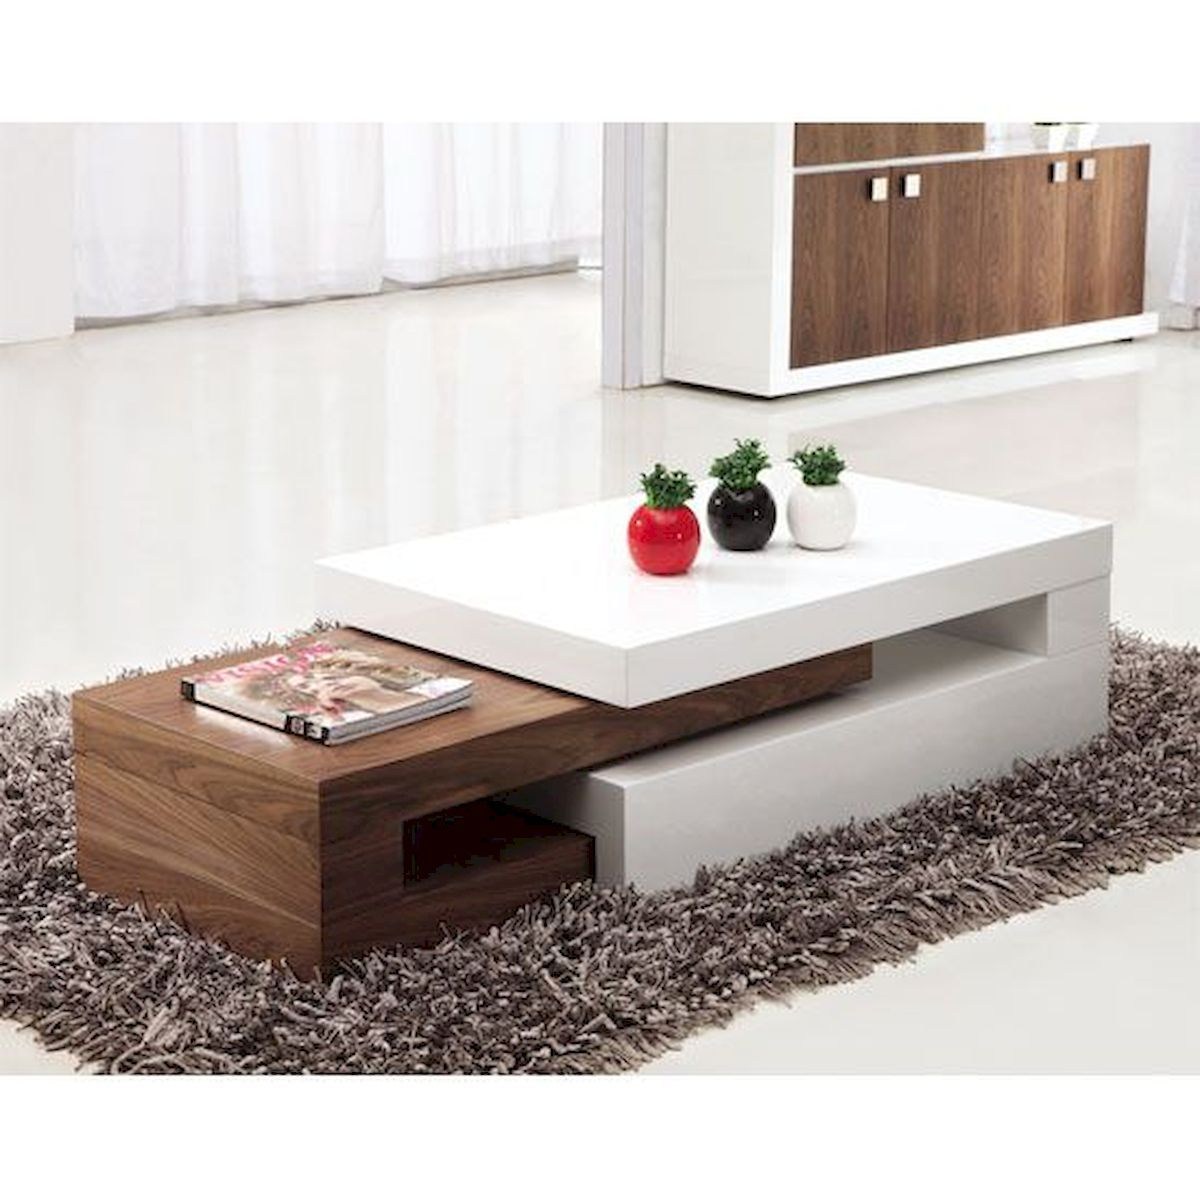 Coffee Table Ideas For Your Living Room Jihanshanum Center Table Living Room Centre Table Living Room Living Room Table [ jpg ]